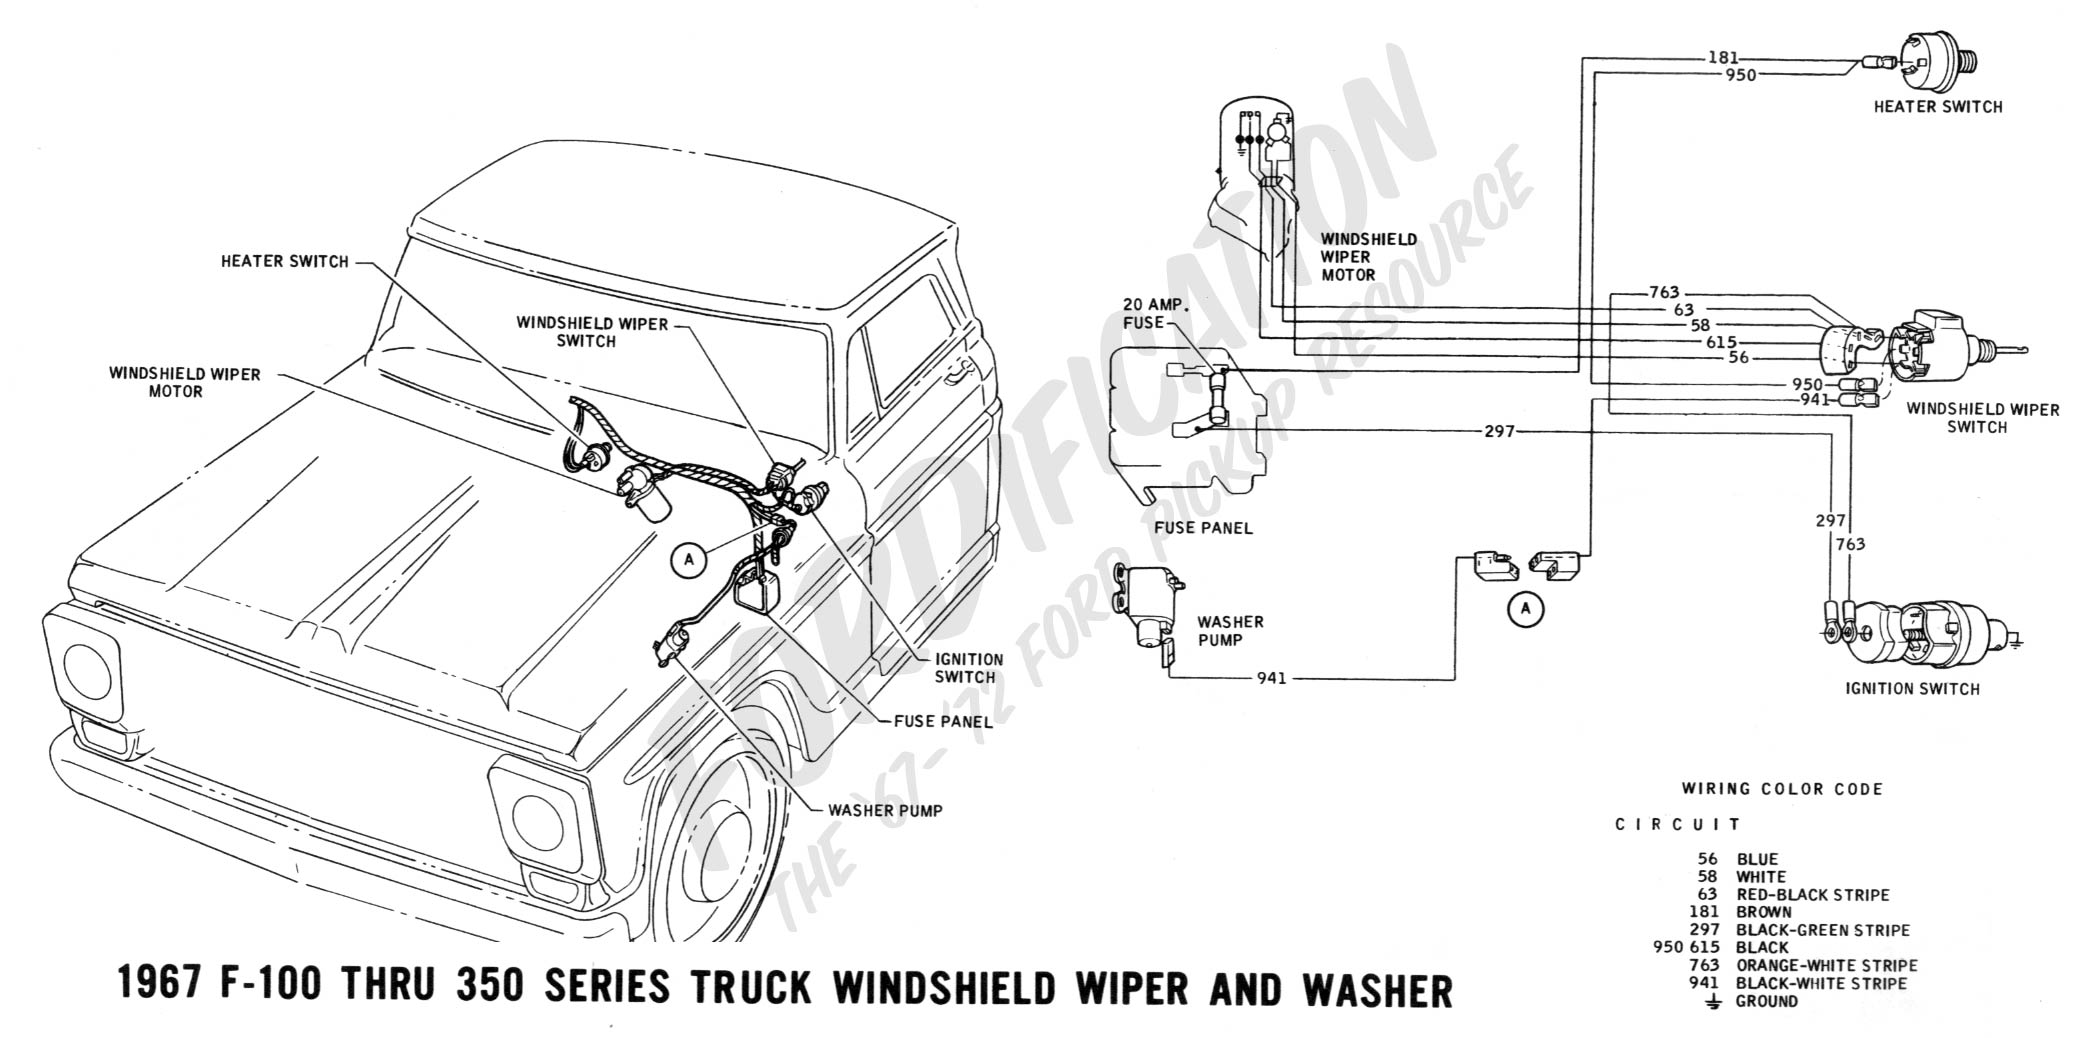 wiring 1967wipers ford truck technical drawings and schematics section h wiring 66 Corvette at mr168.co